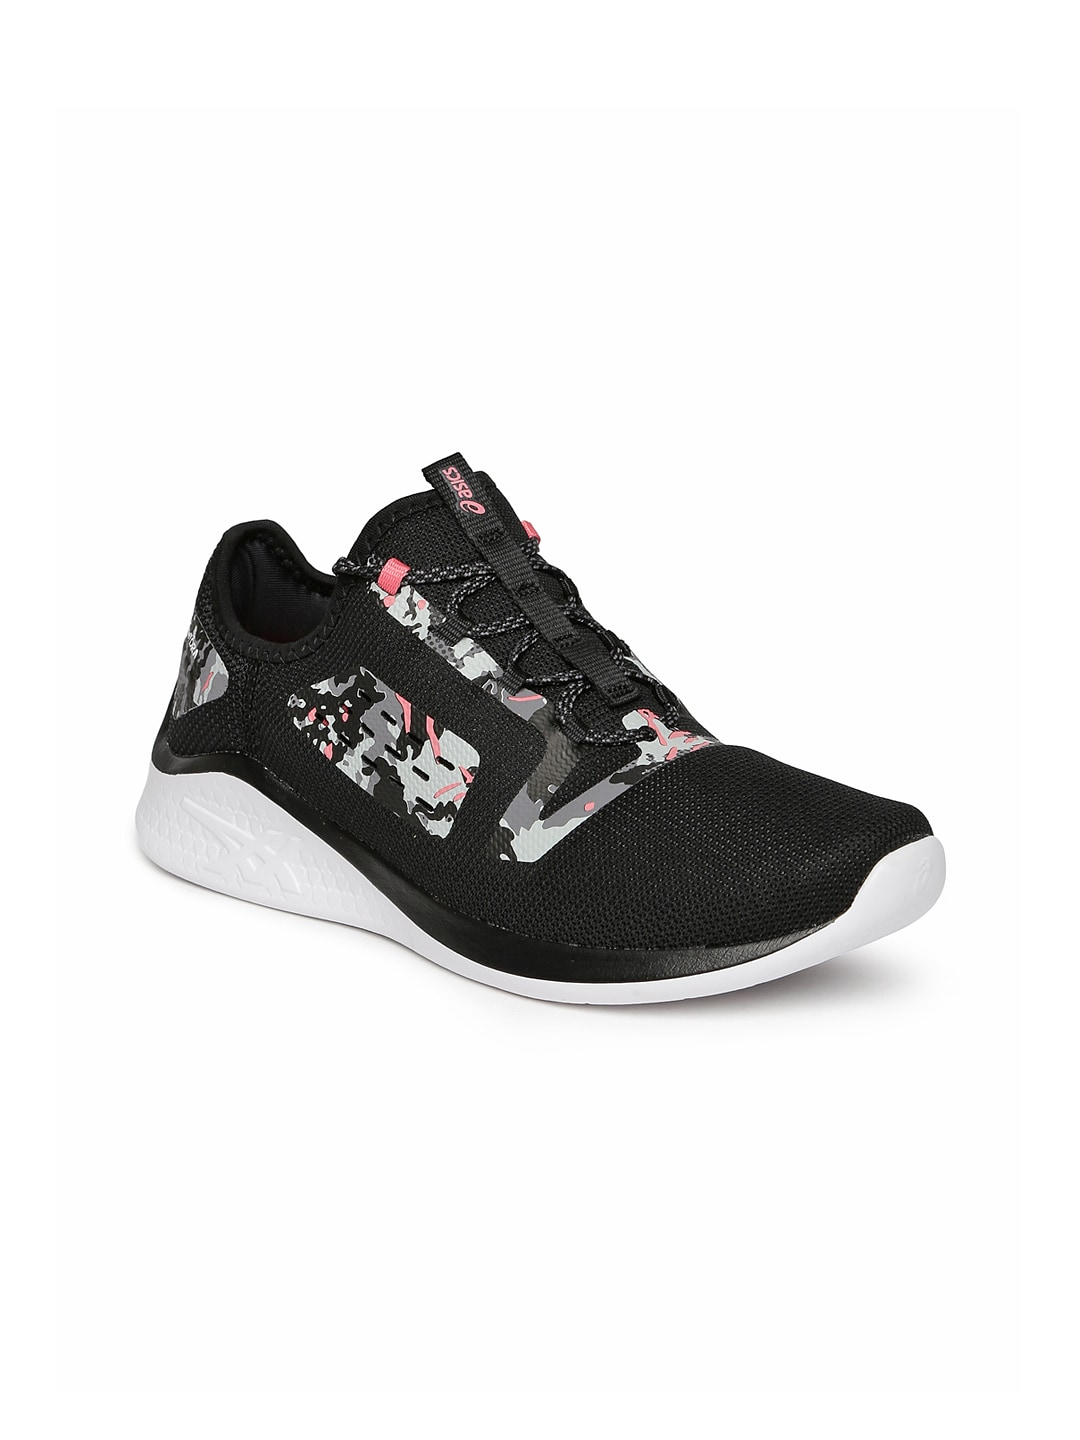 2c491d6afadf6 Asics Metrolyte Black Training Shoes for women - Get stylish shoes ...